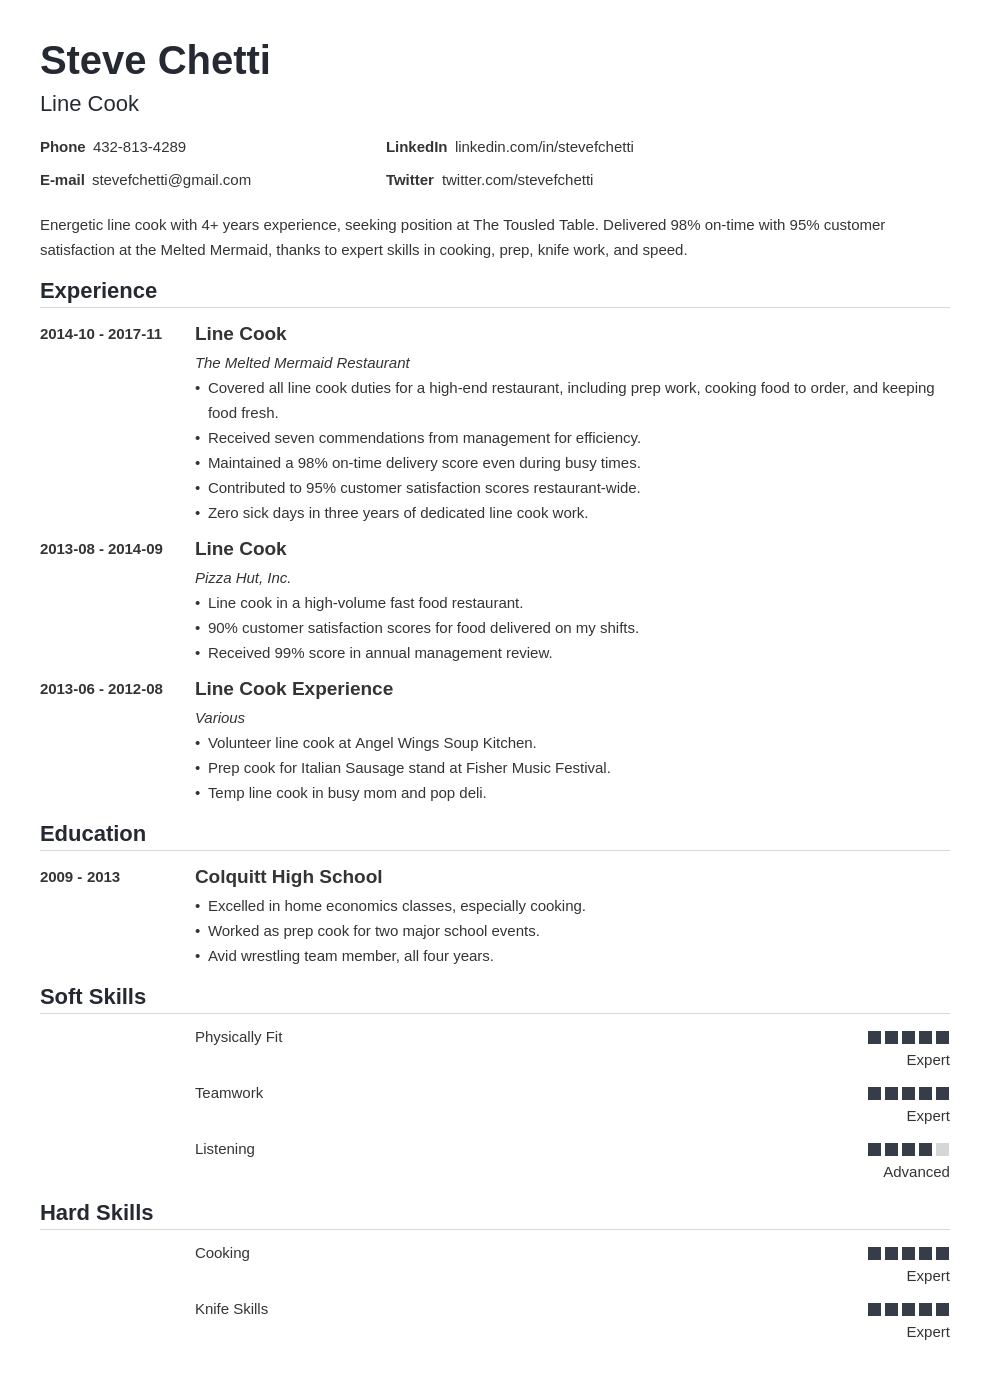 Line Cook Resume Sample Job Description And Skills